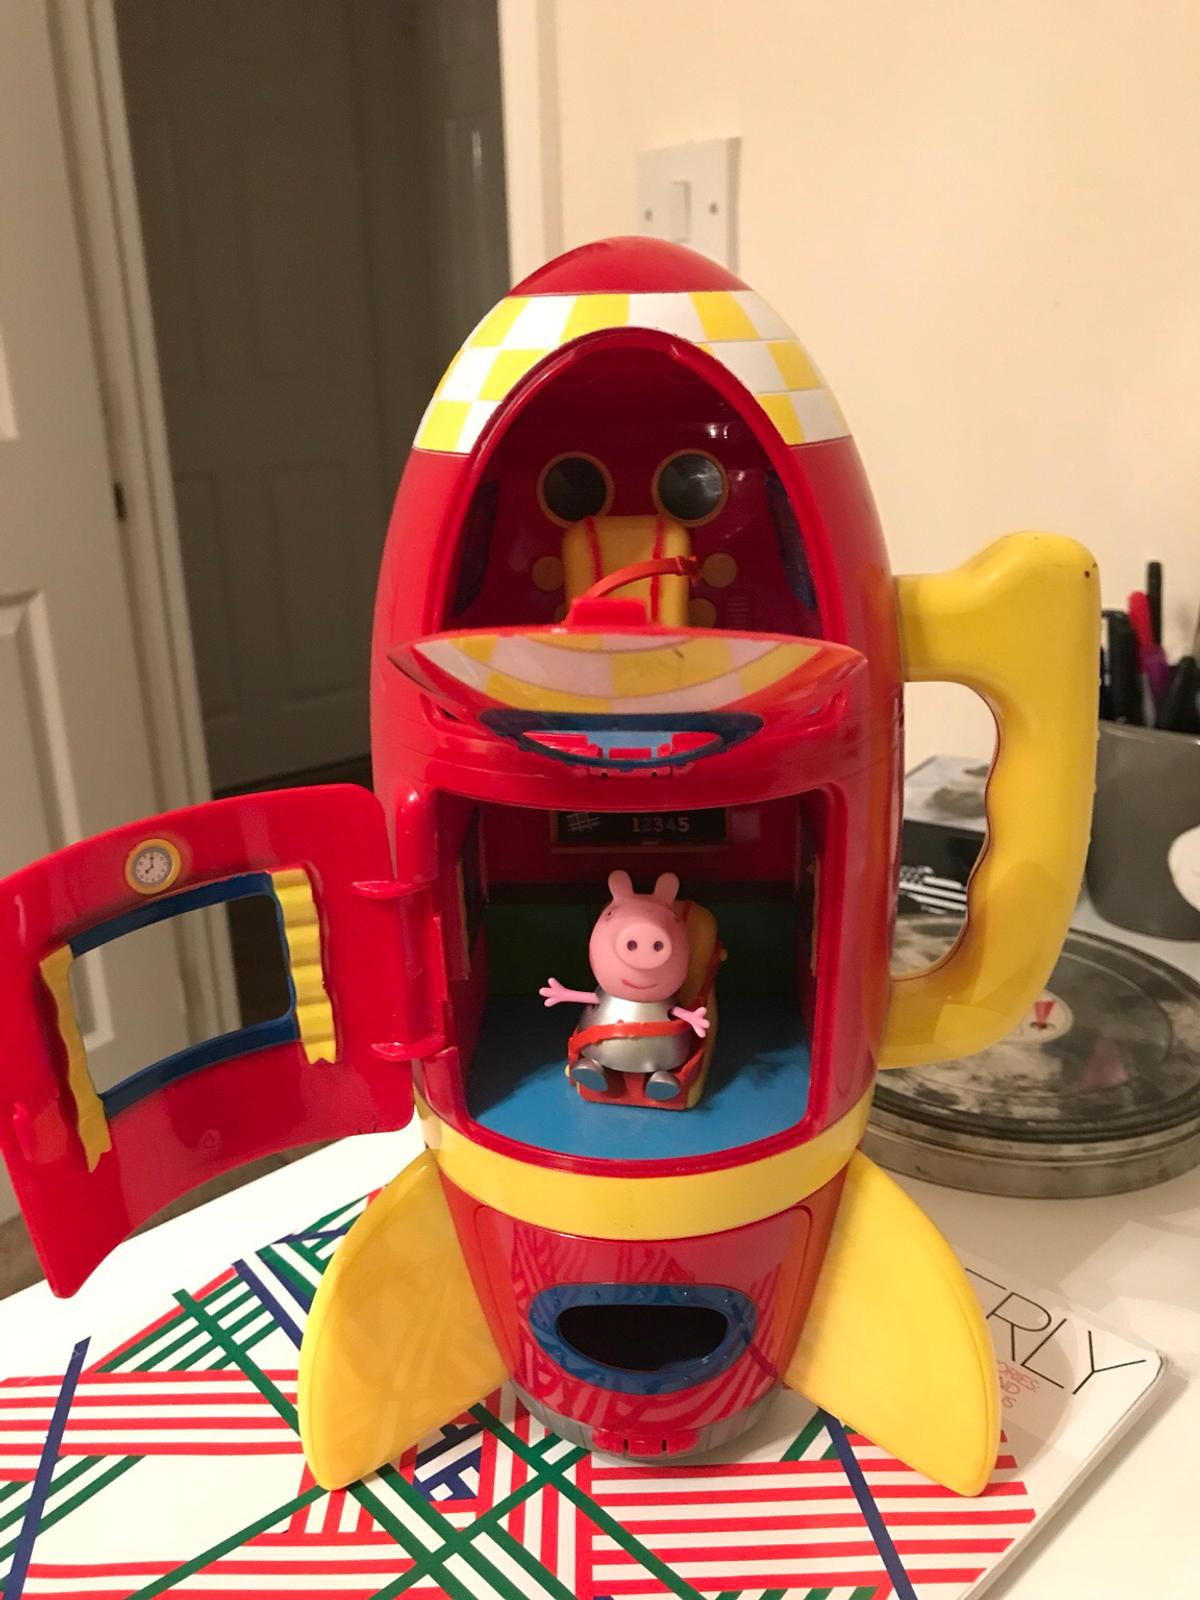 Peppa Pig rocket with sound Effects in CF82 Hengoed for £5 00 for